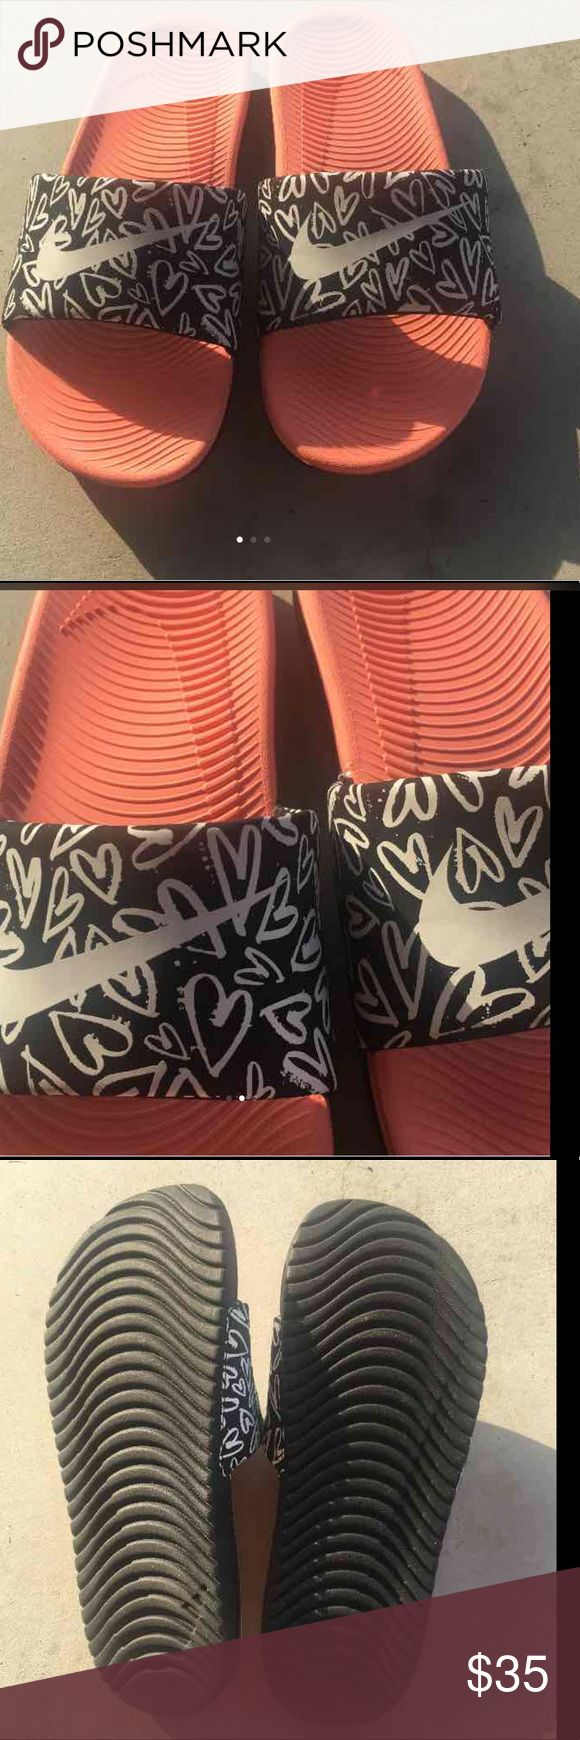 Nike sliders Like new, never worn. Size 6y but fits size 7-8 women's. coral peach color. Nike Shoes Sandals